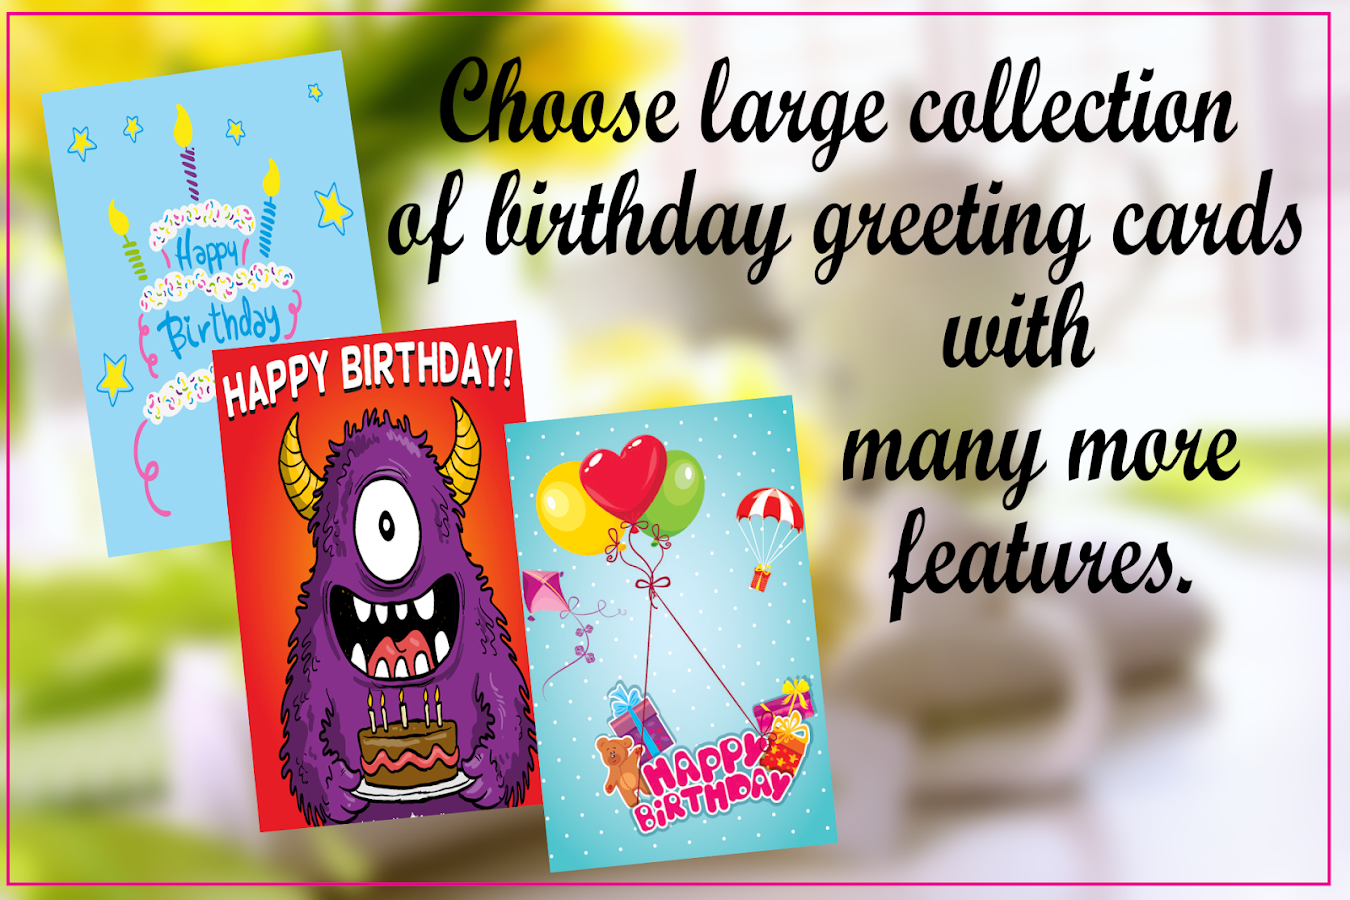 Birthday Greeting Card Maker Android Apps on Google Play – Greeting Cards.com Birthday